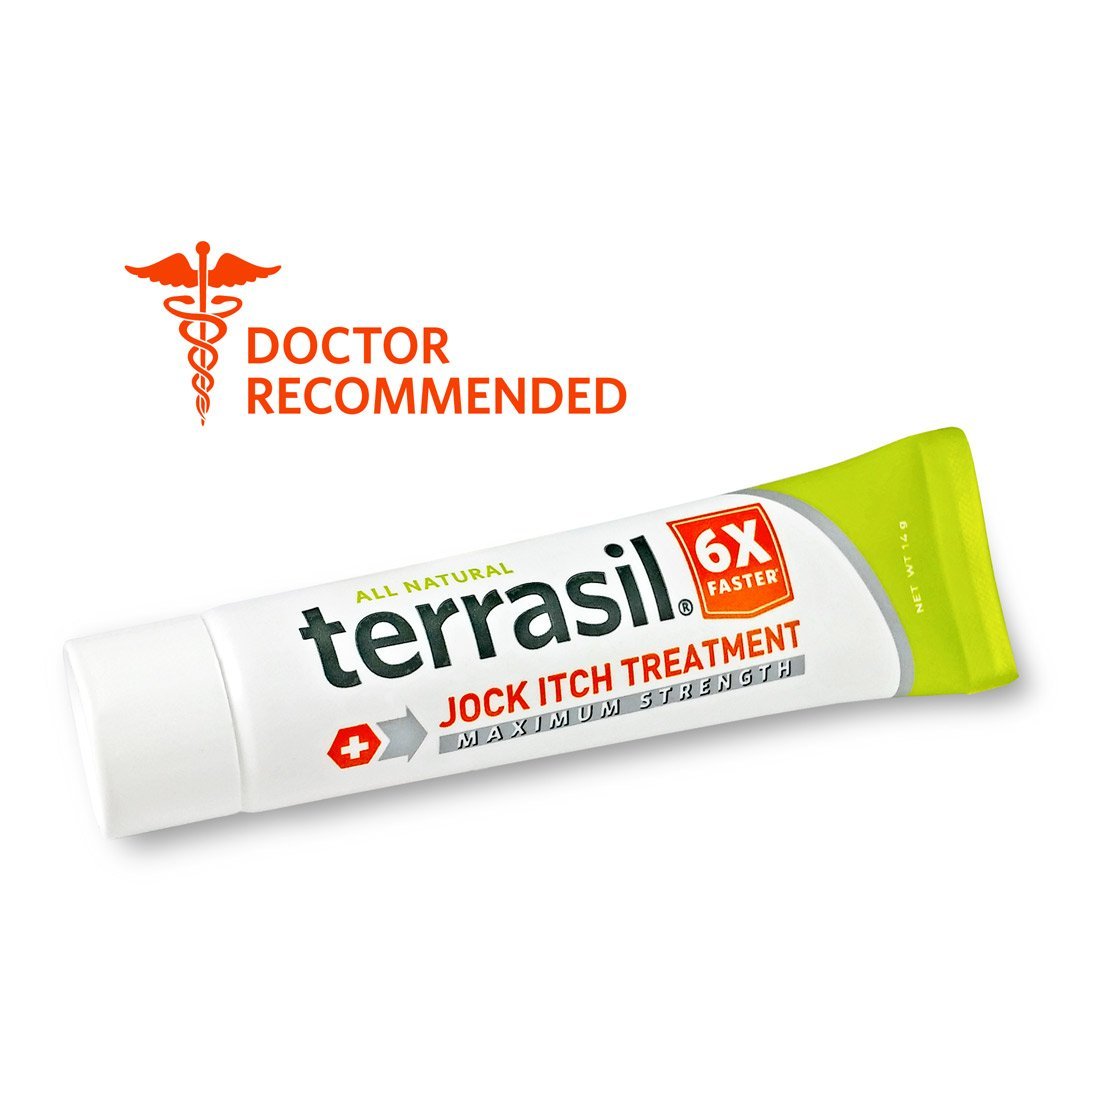 Jock Itch Treatment MAX - 6X Faster Than Leading Brands Dr. Recommended 100% Guaranteed All Natural Antifungal Ointment Treats Tinea Cruris Relieves Itch Irritation by Terrasil® 14 grams